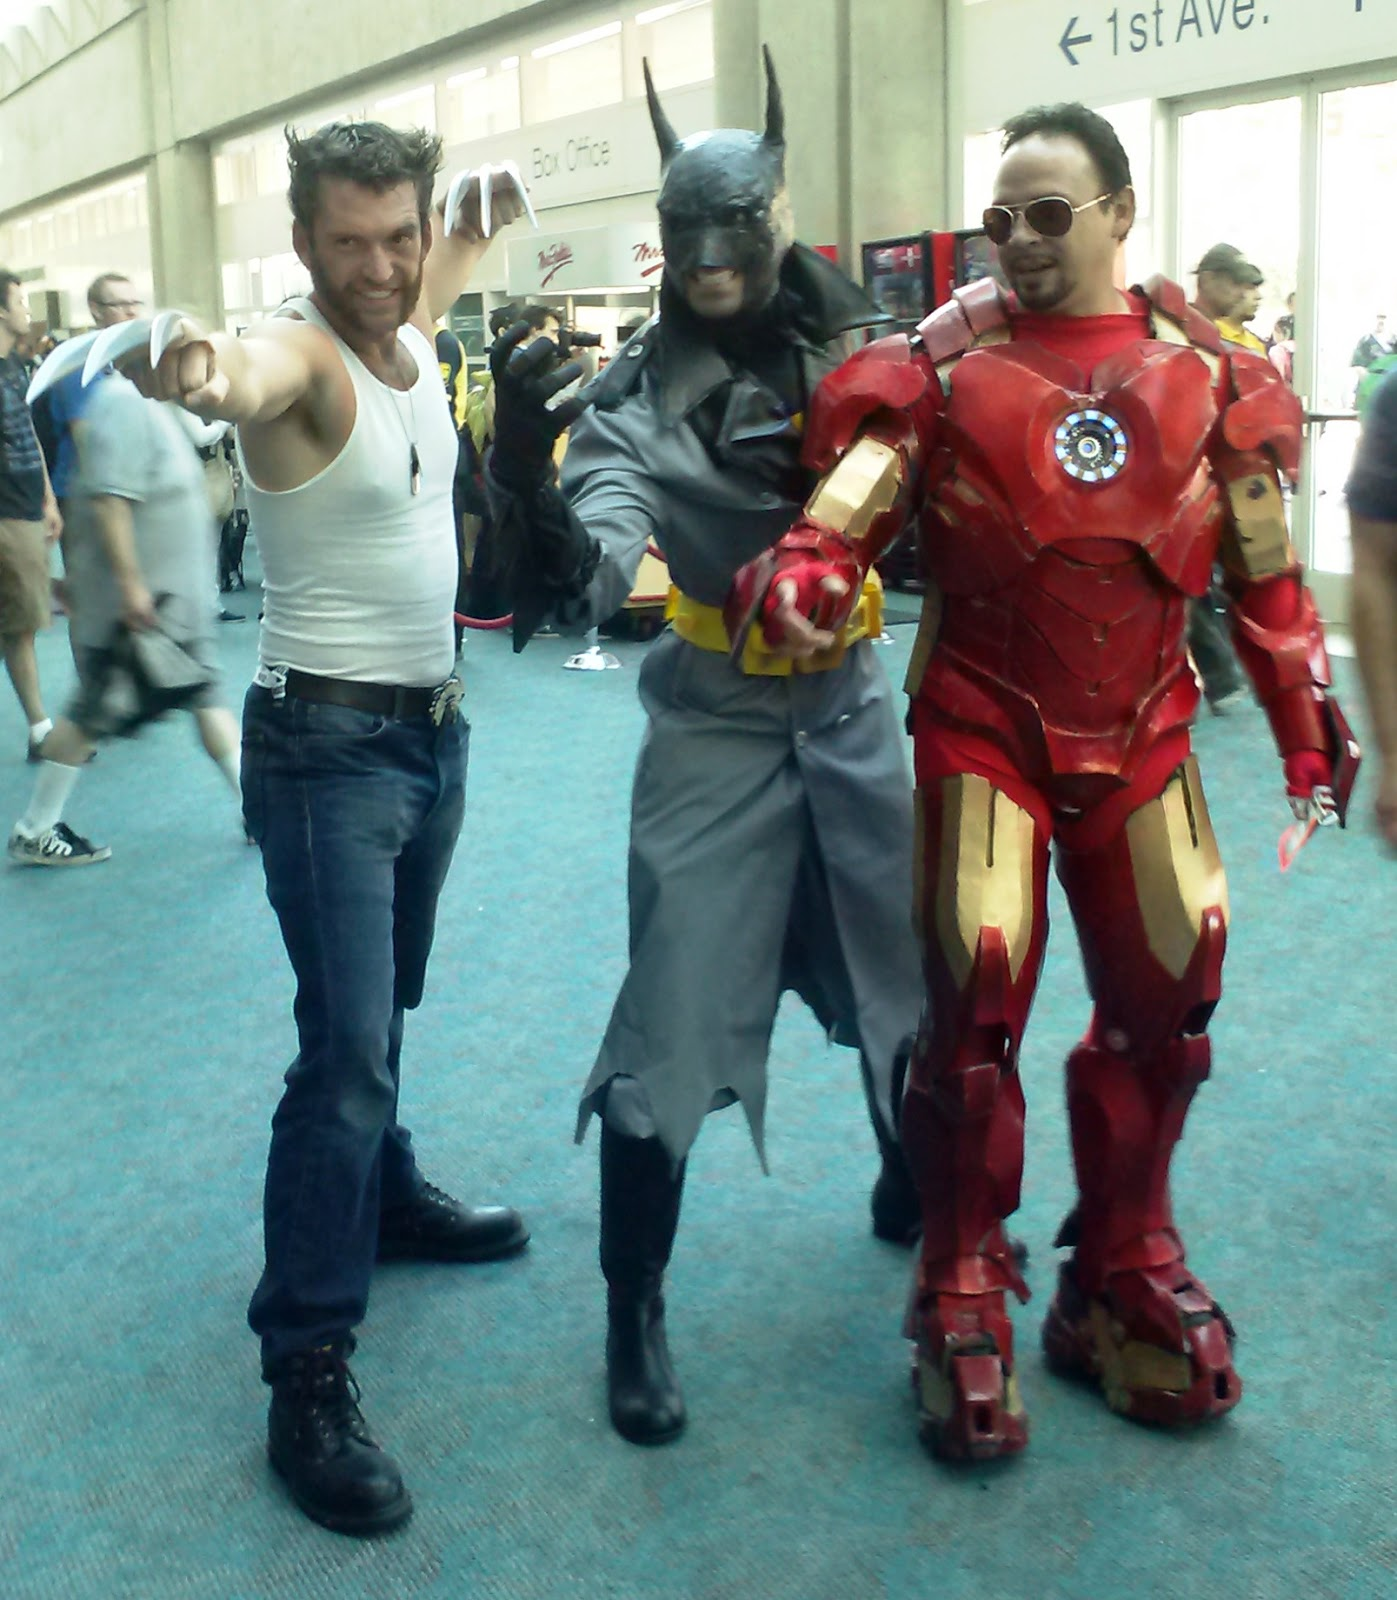 The Talking Box: Photo Recapping 2013 Comic-Con: The Costumes